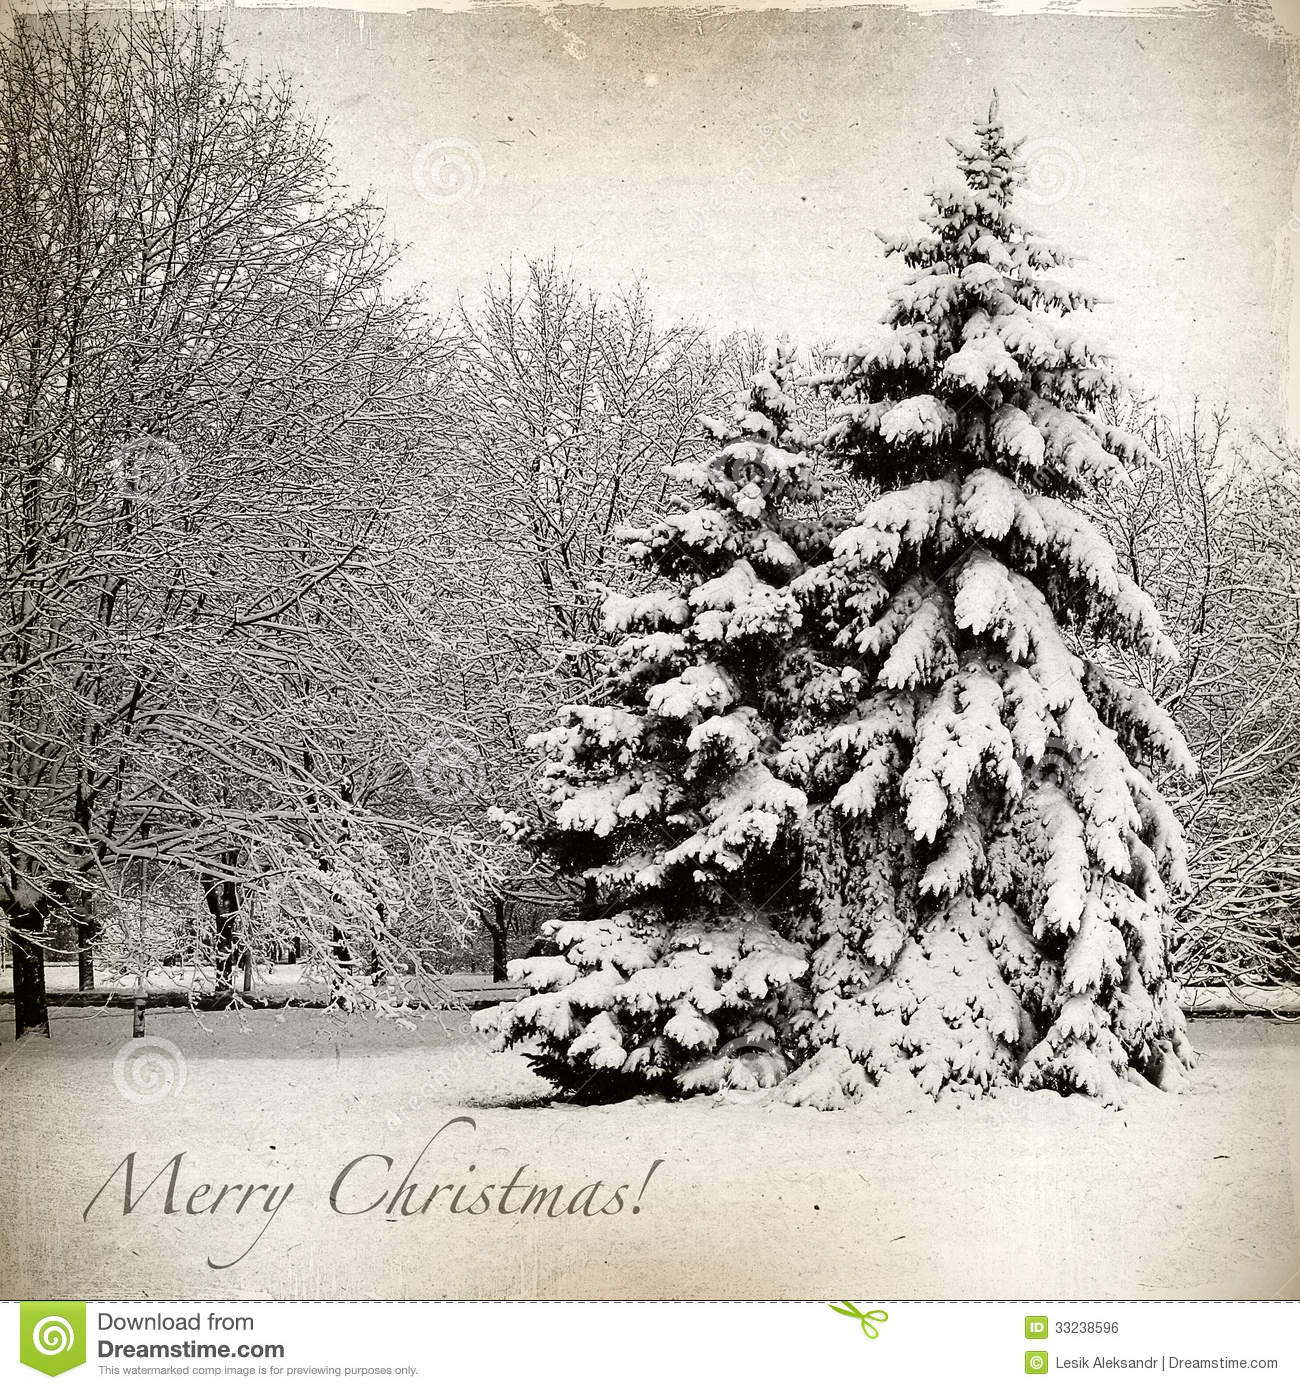 Retro card with christmas winter landscape stock for Christmas landscape images